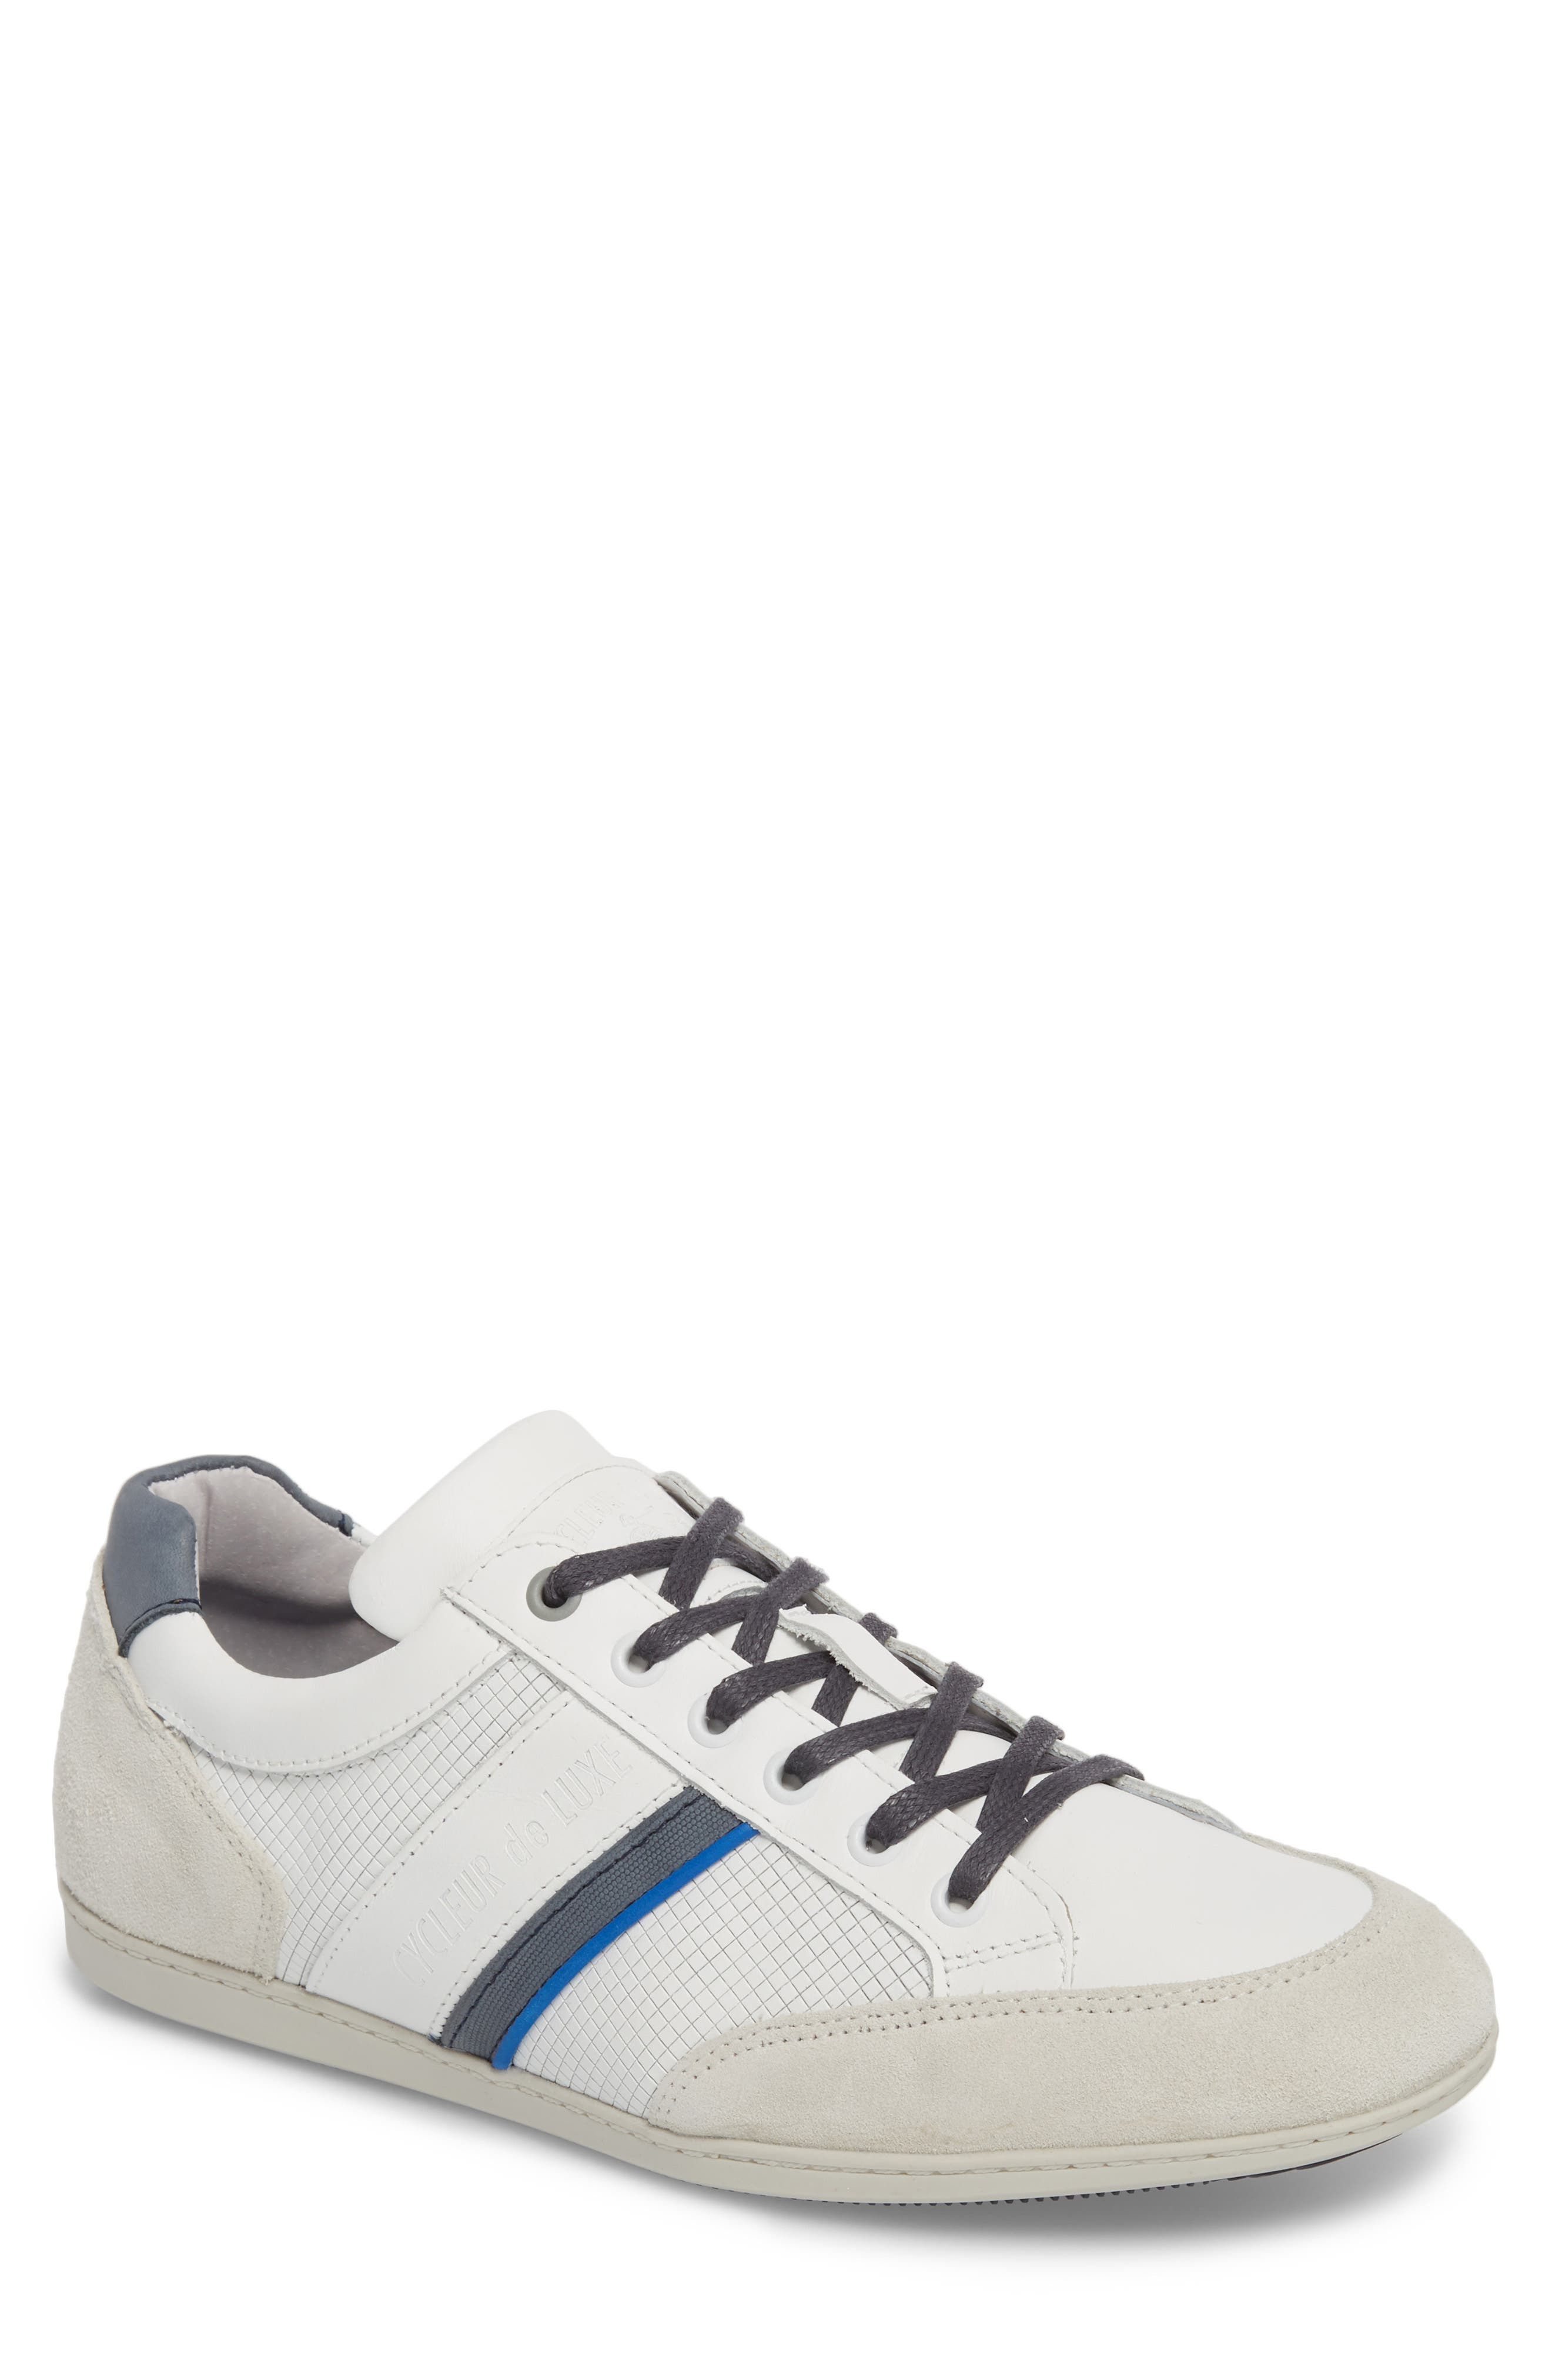 Bahamas Low Top Sneaker,                         Main,                         color, Off White/ Navy Leather